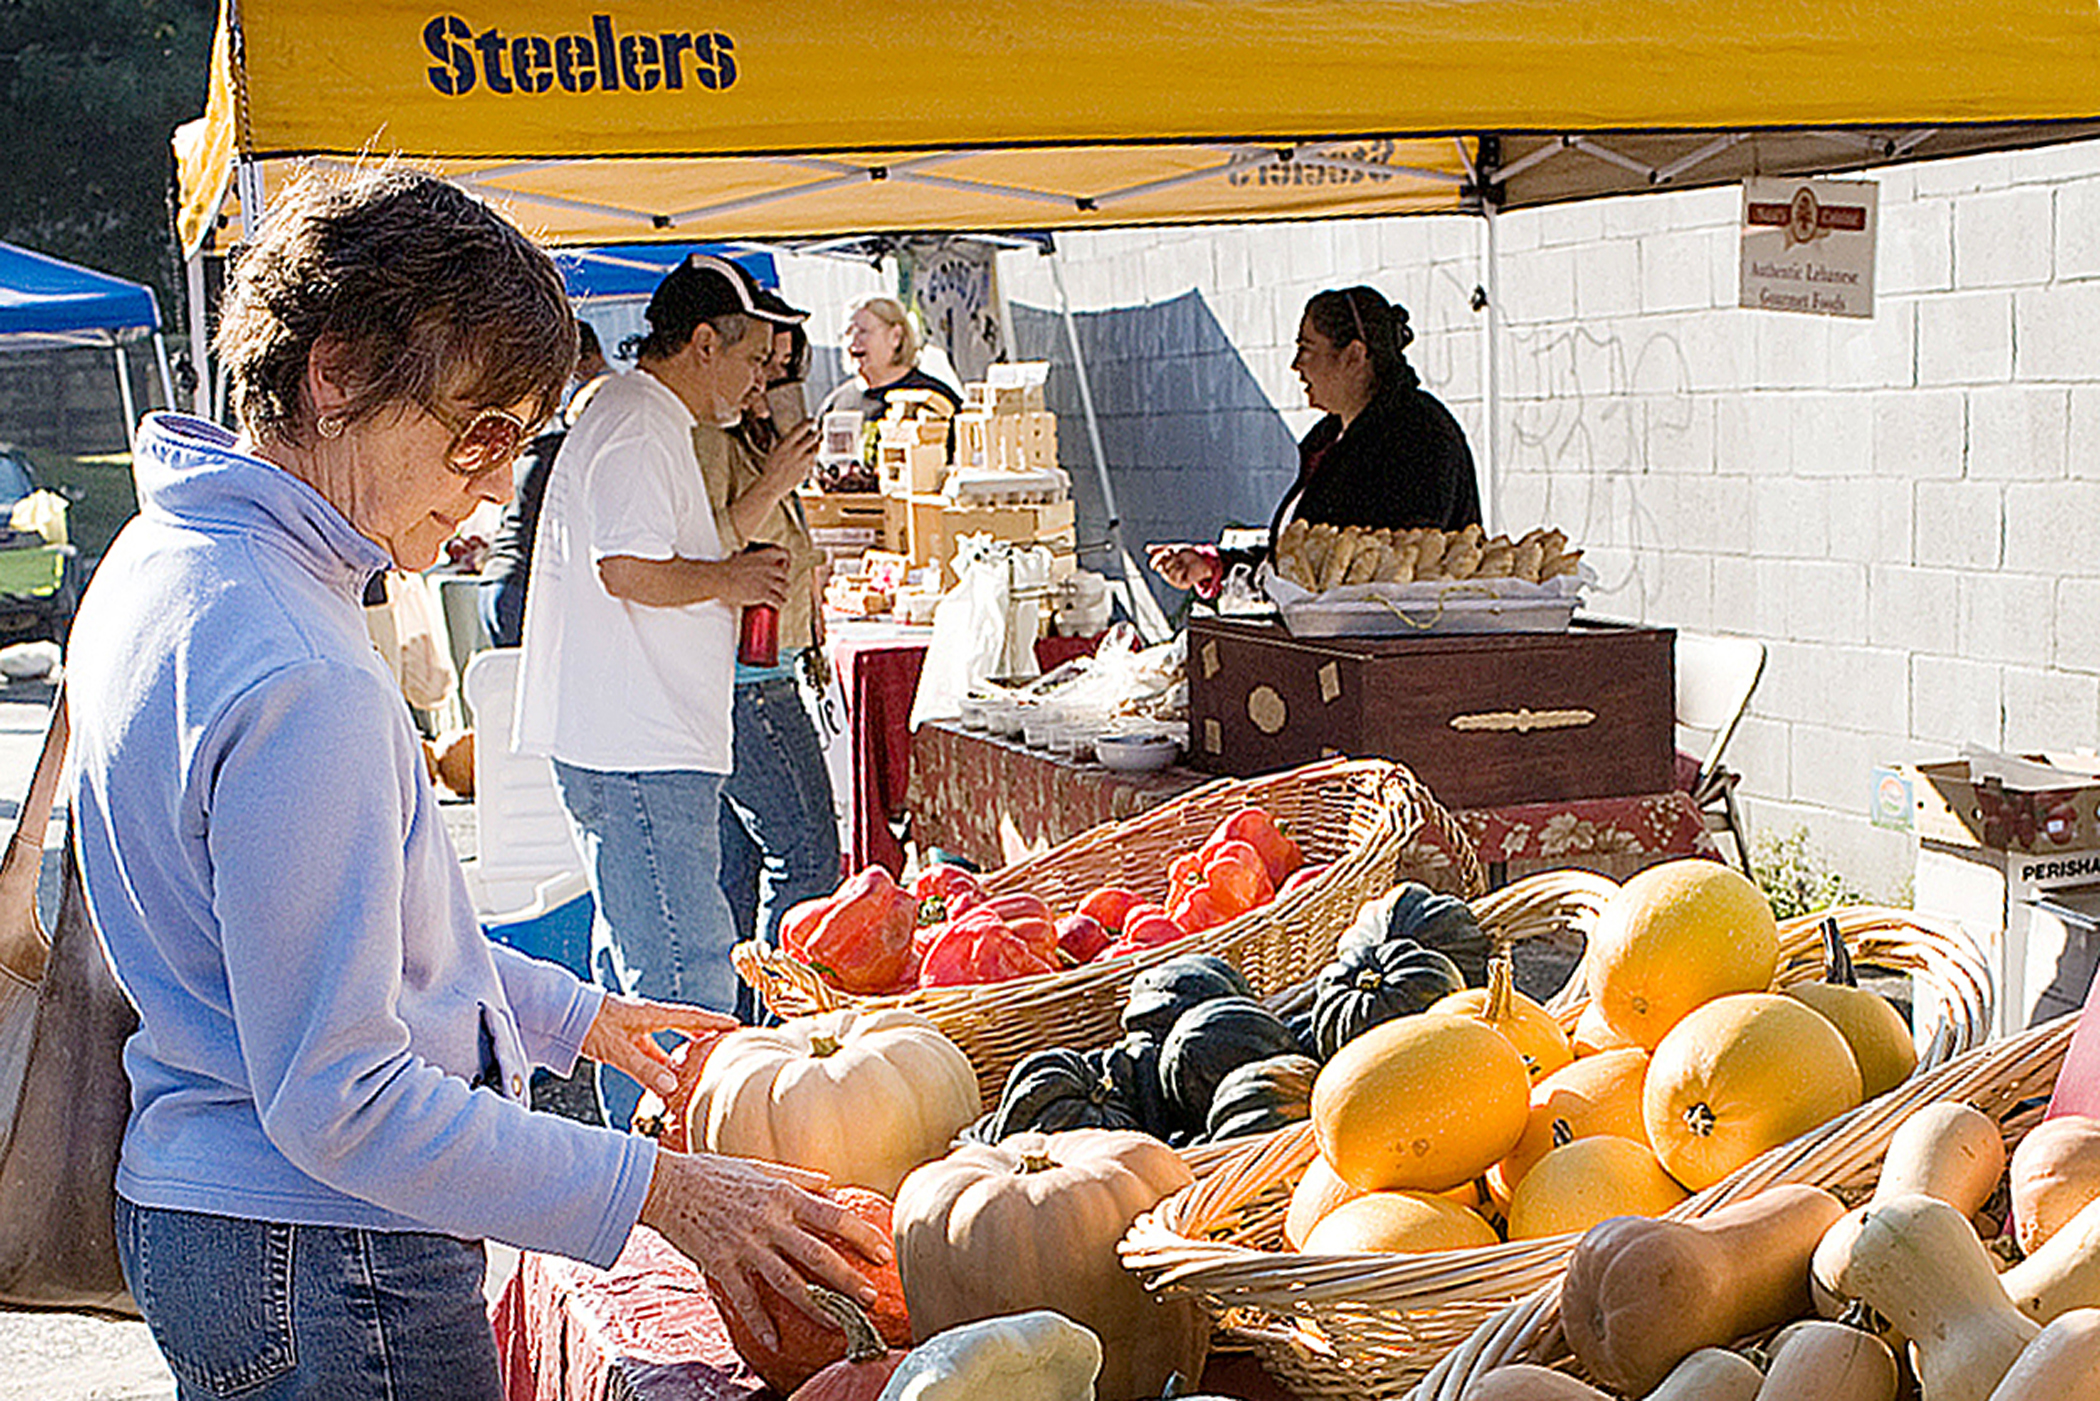 Saturday Farmers Market on The Strip District, Penn Avenue, Pittsburgh, Pennsylvania